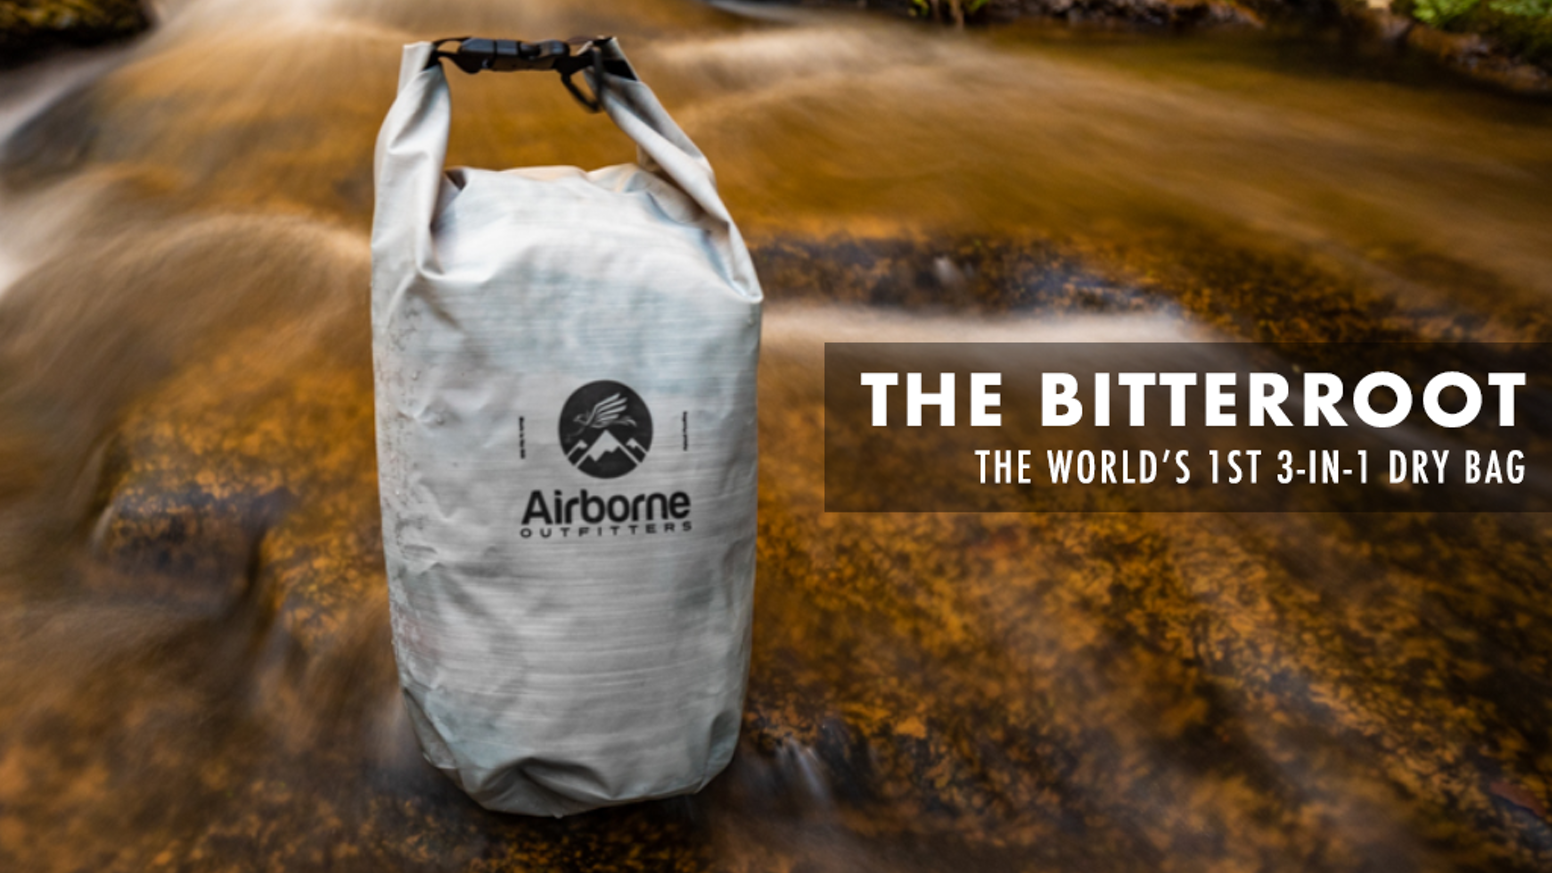 The Bitterroot dry bag, combines three basic camping necessities into one useful piece of outdoor gear.